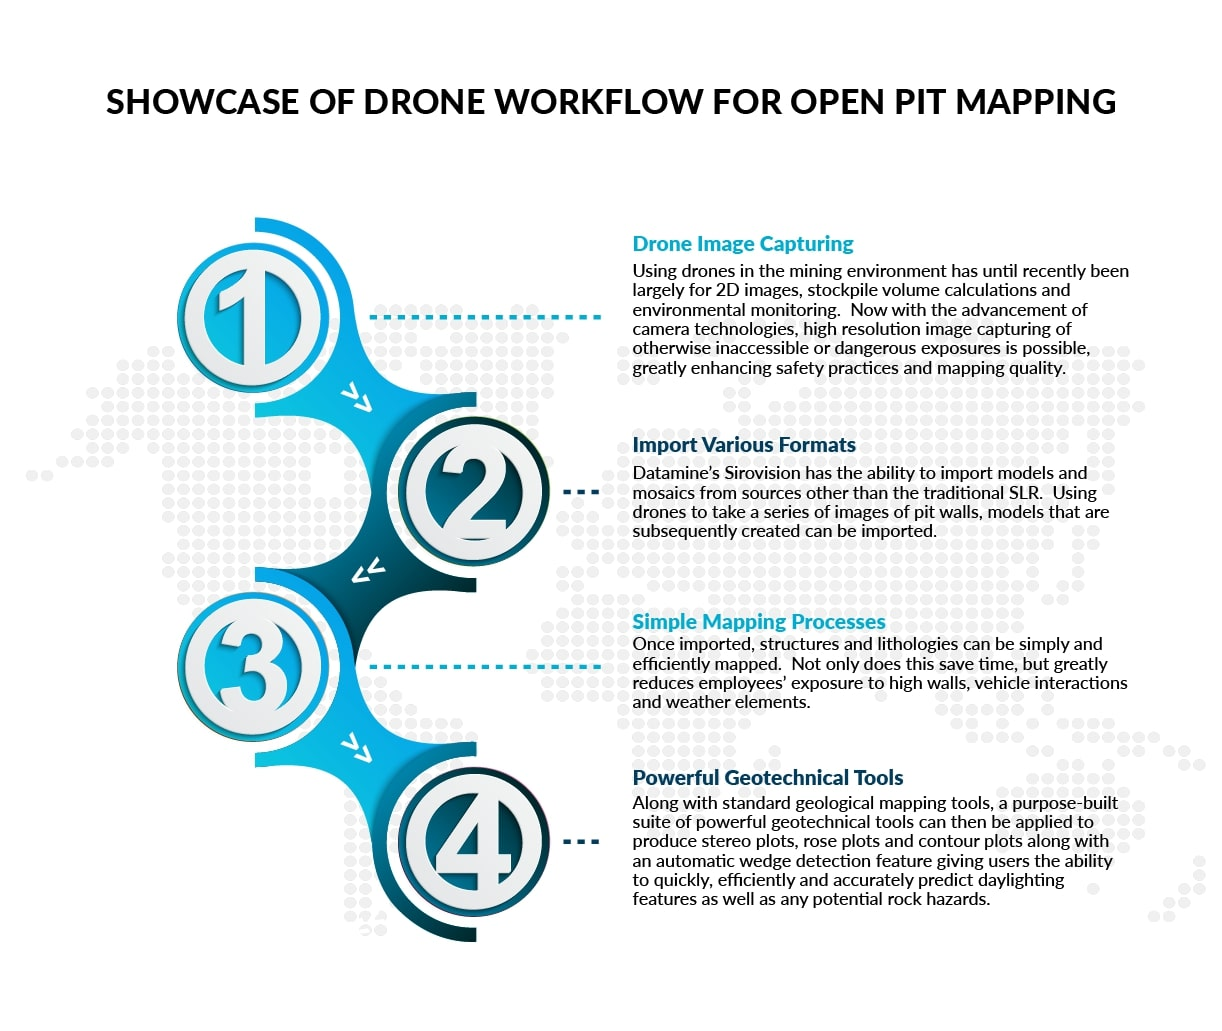 Showcase Of Drone Workflow For Open Pit Mapping